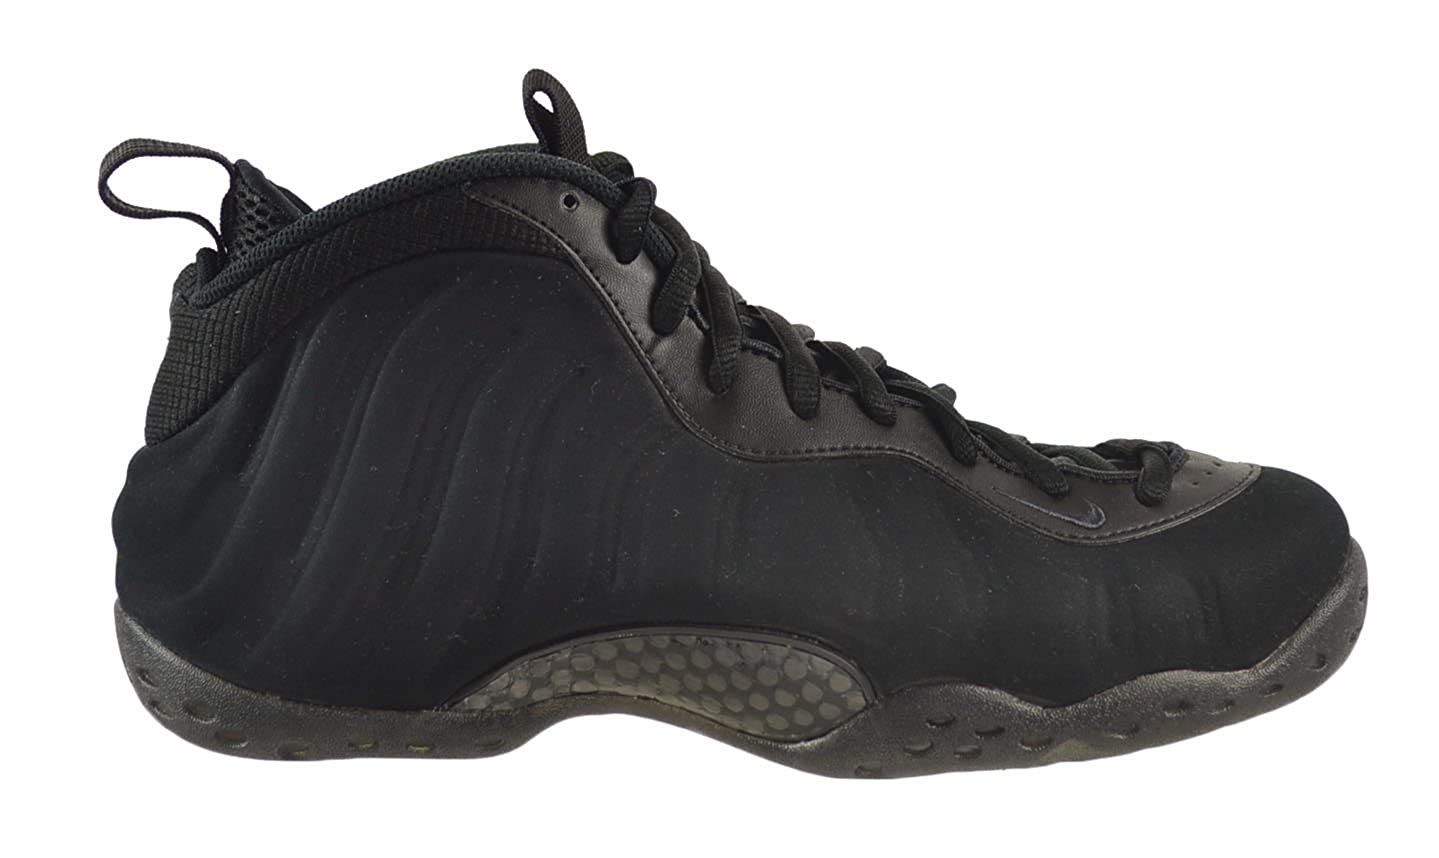 new arrival ac8b2 525da Amazon.com   Nike Air Foamposite One Premium Men s Shoes Black Anthracite  575420-006   Basketball